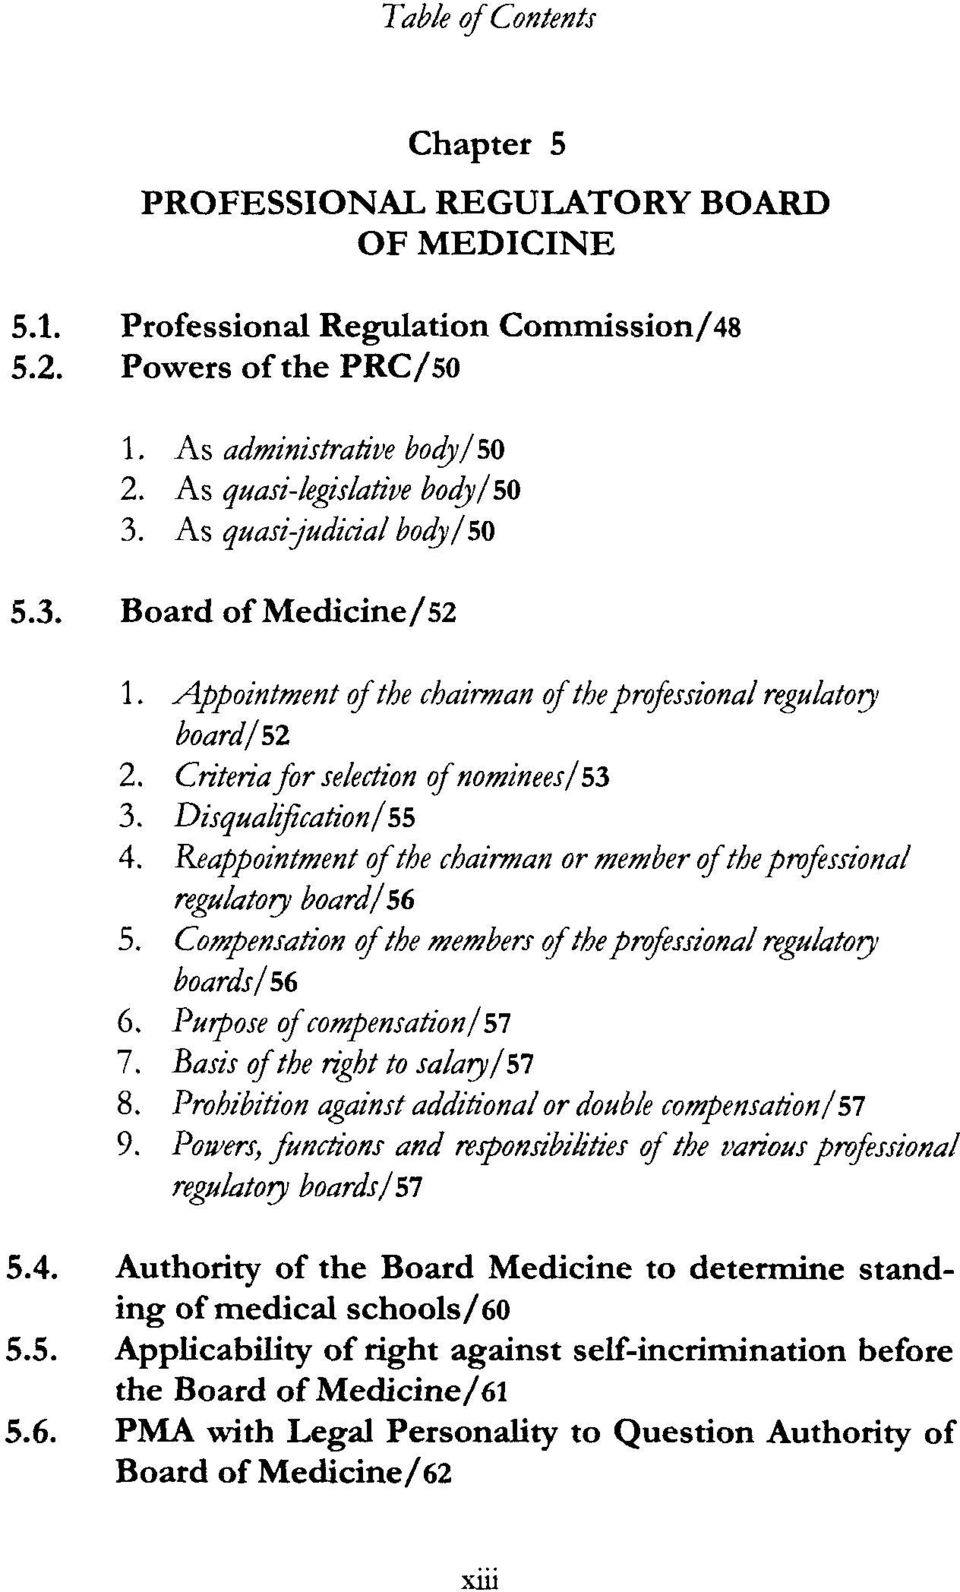 Basics of philippine medical jurisprudence and ethics pdf reappointment of the chairman or member of the professional regulatory board56 5 compensation fandeluxe Images